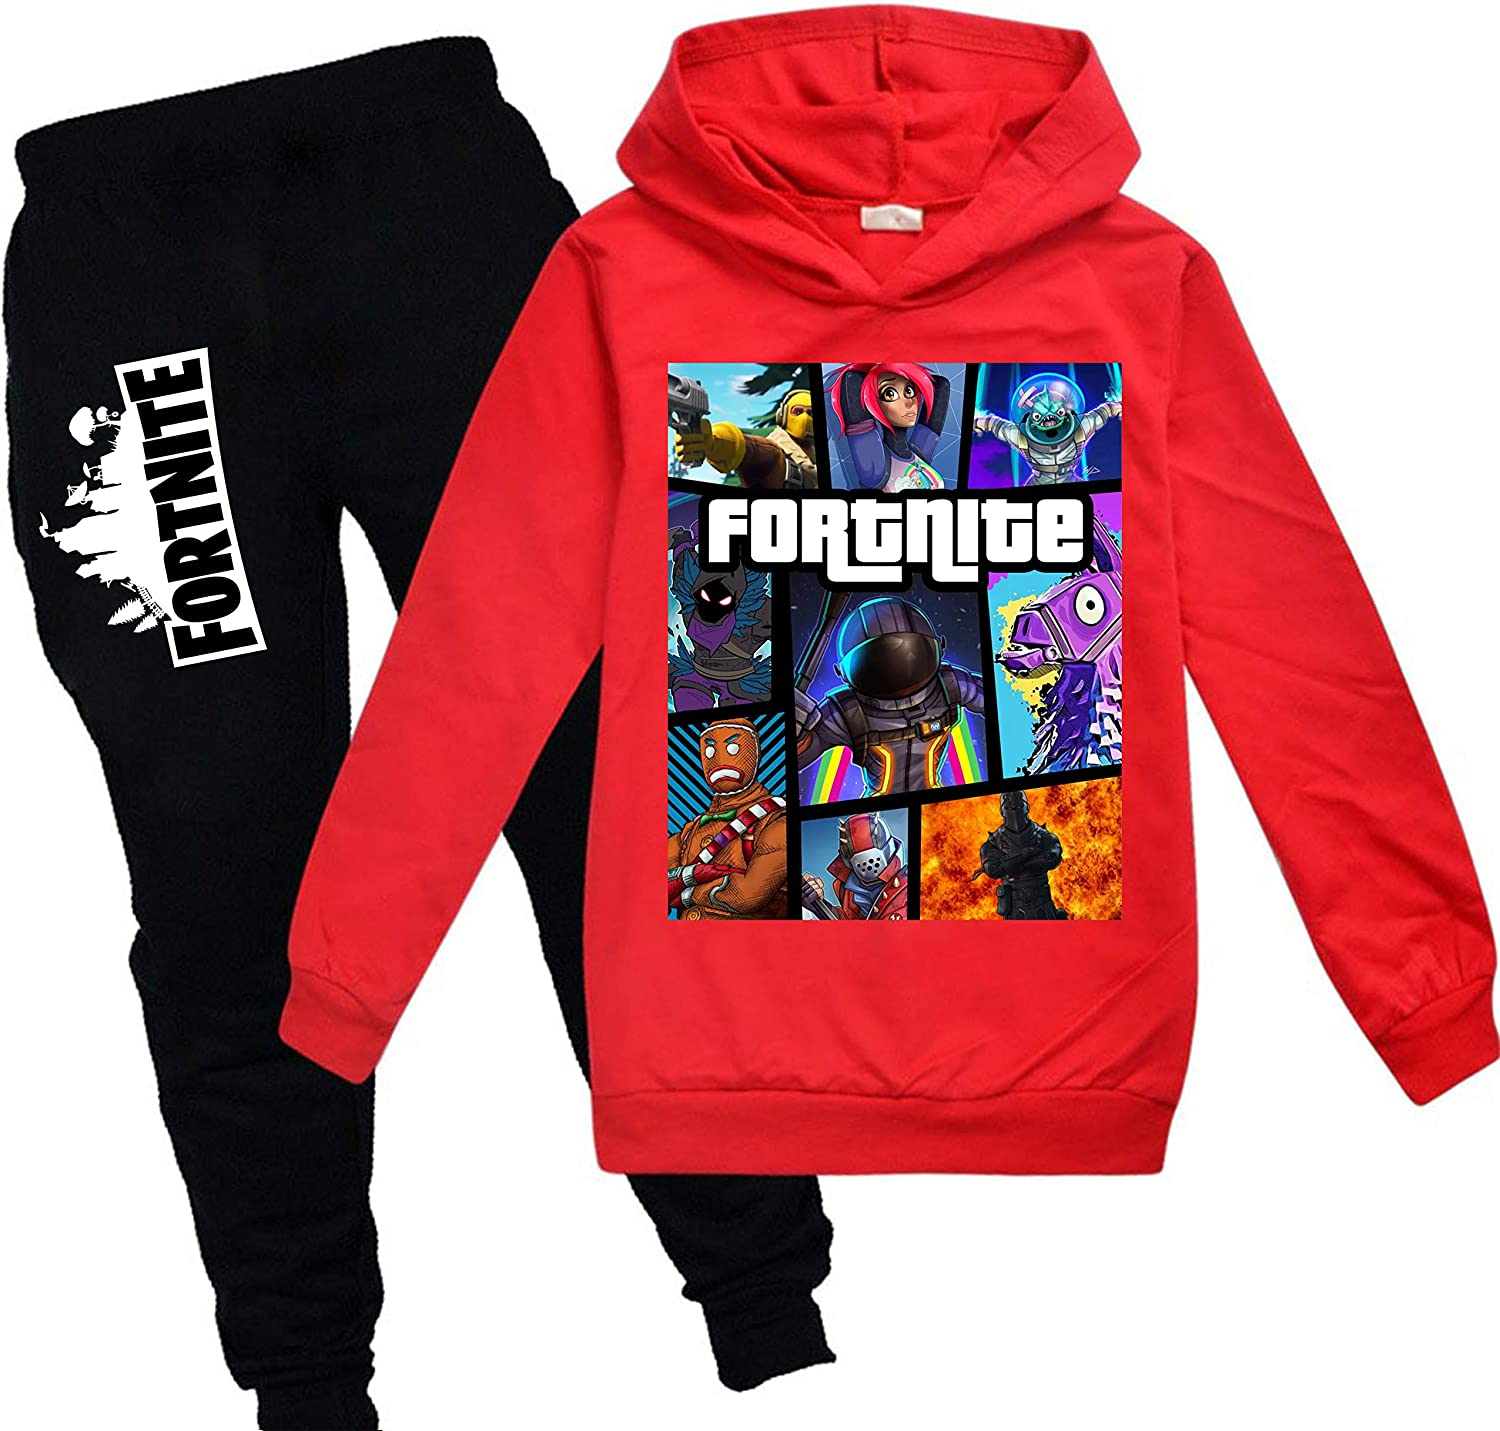 Kids Fortnite Pullover Hoodie and Sweatpants Suit for Boys Girls...